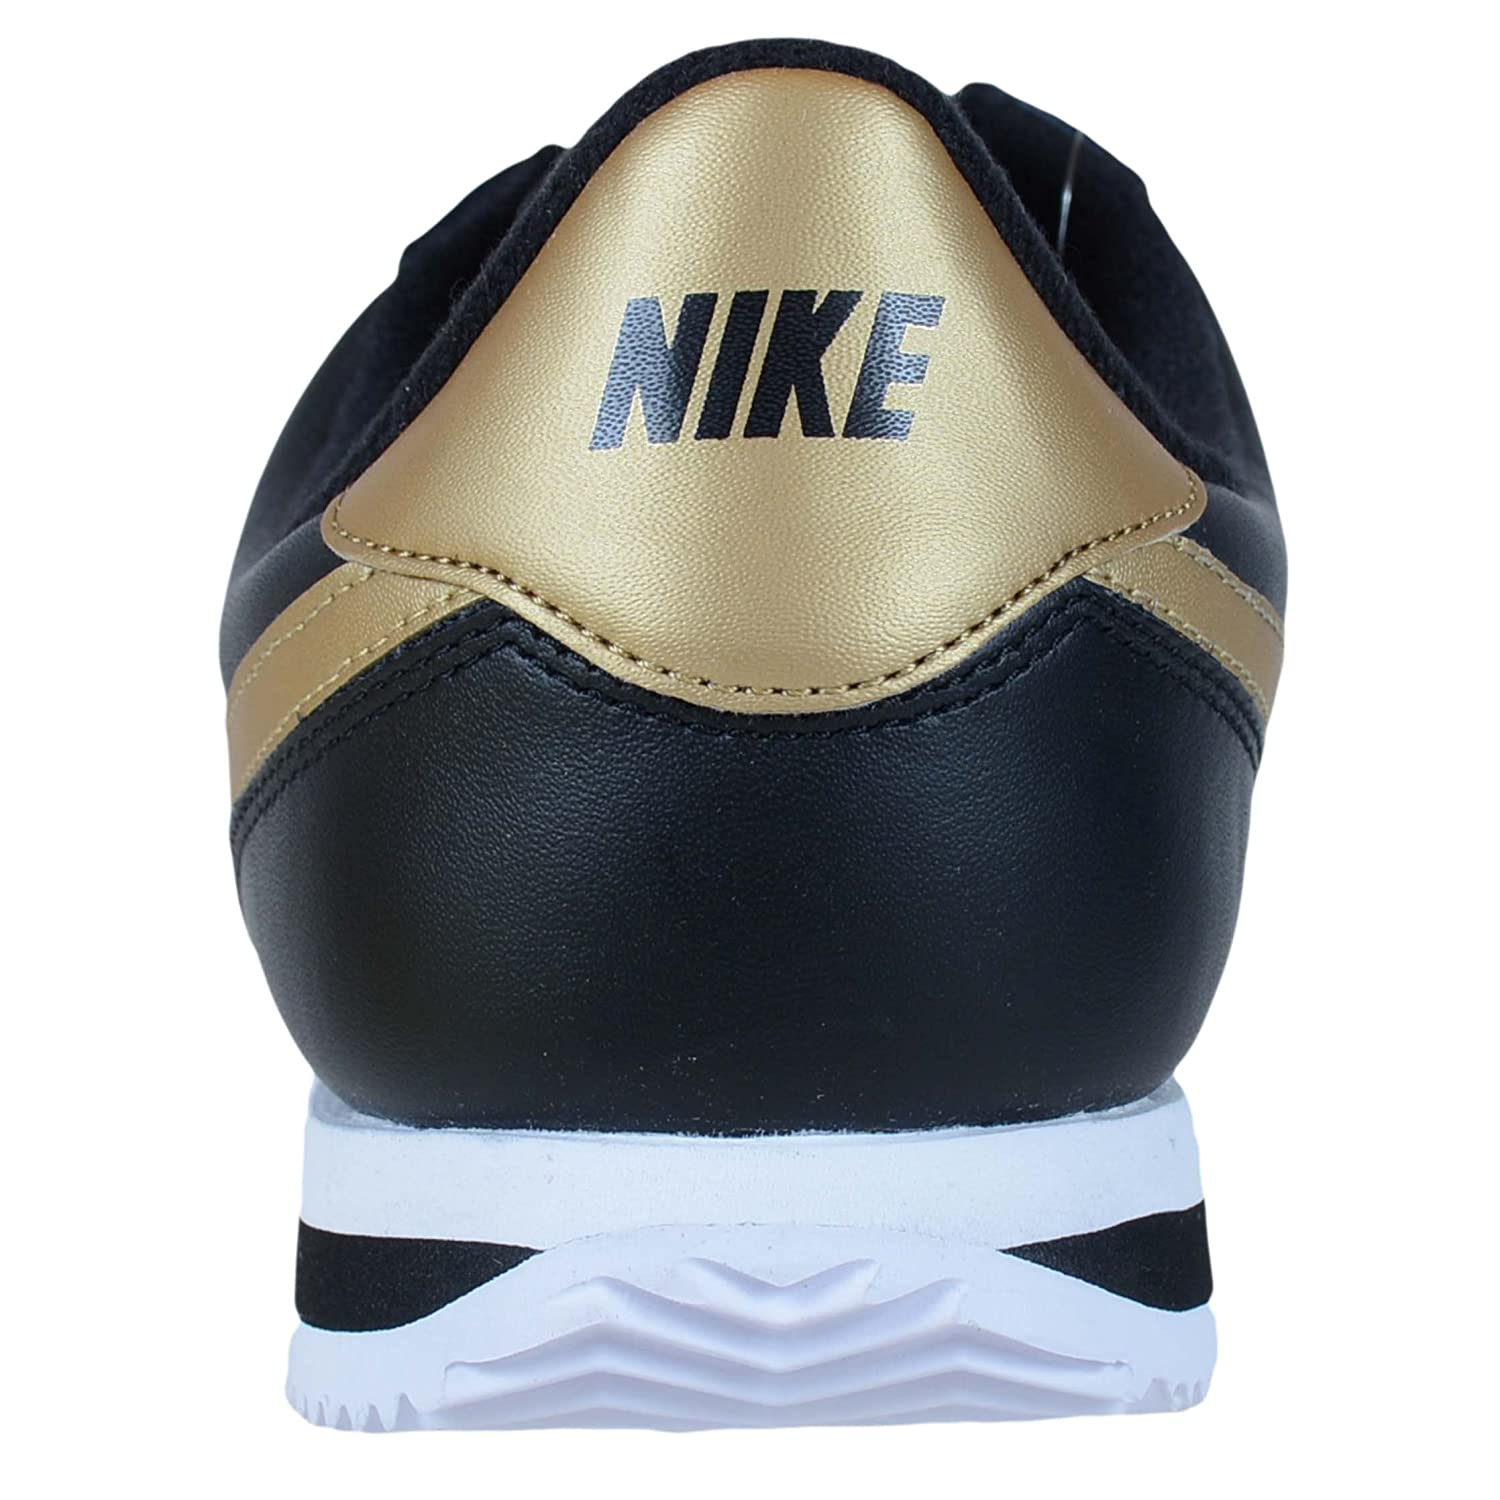 separation shoes 4a5a6 6f355 Amazon.com   Nike Men s Classic Cortez Leather Casual Shoe   Fashion  Sneakers